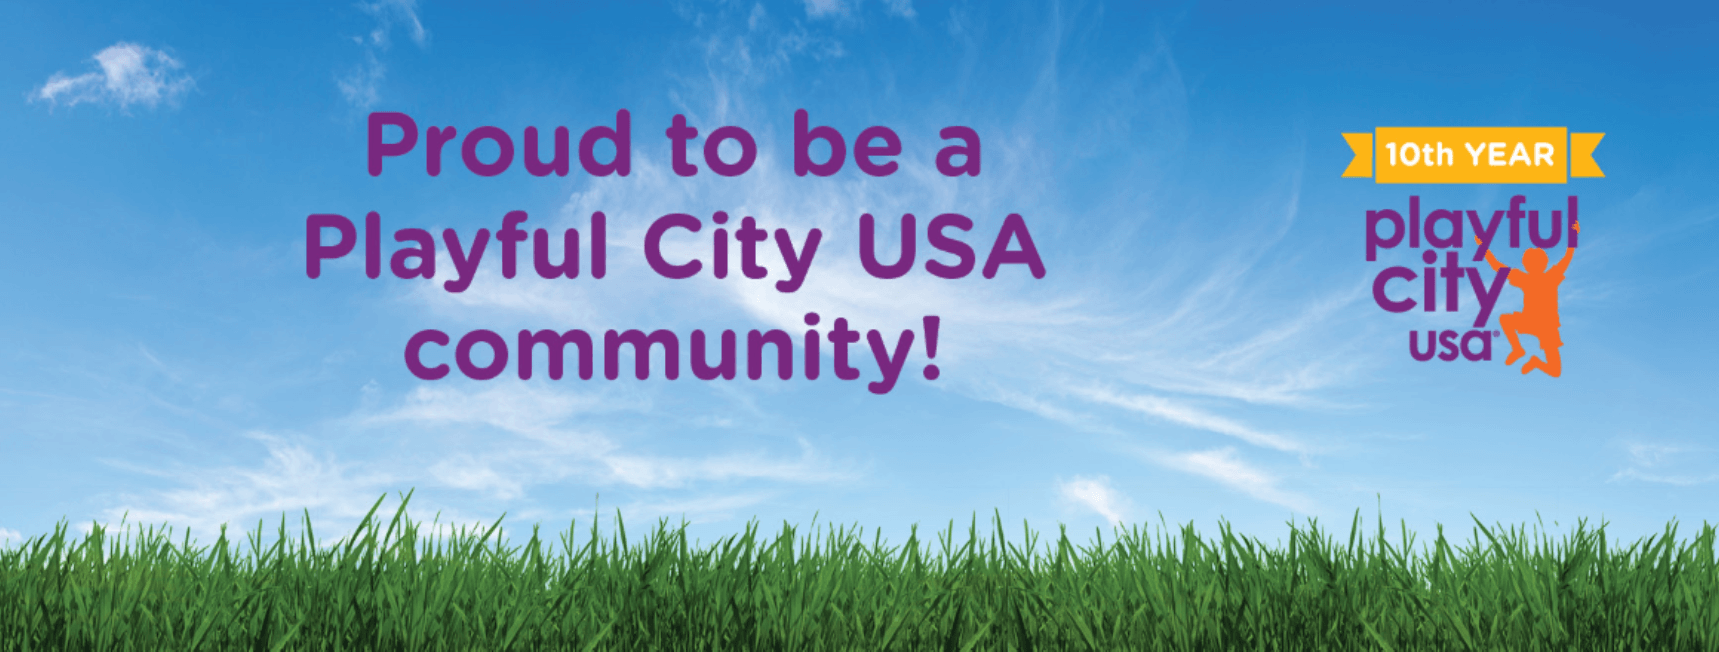 playful city usa header.png